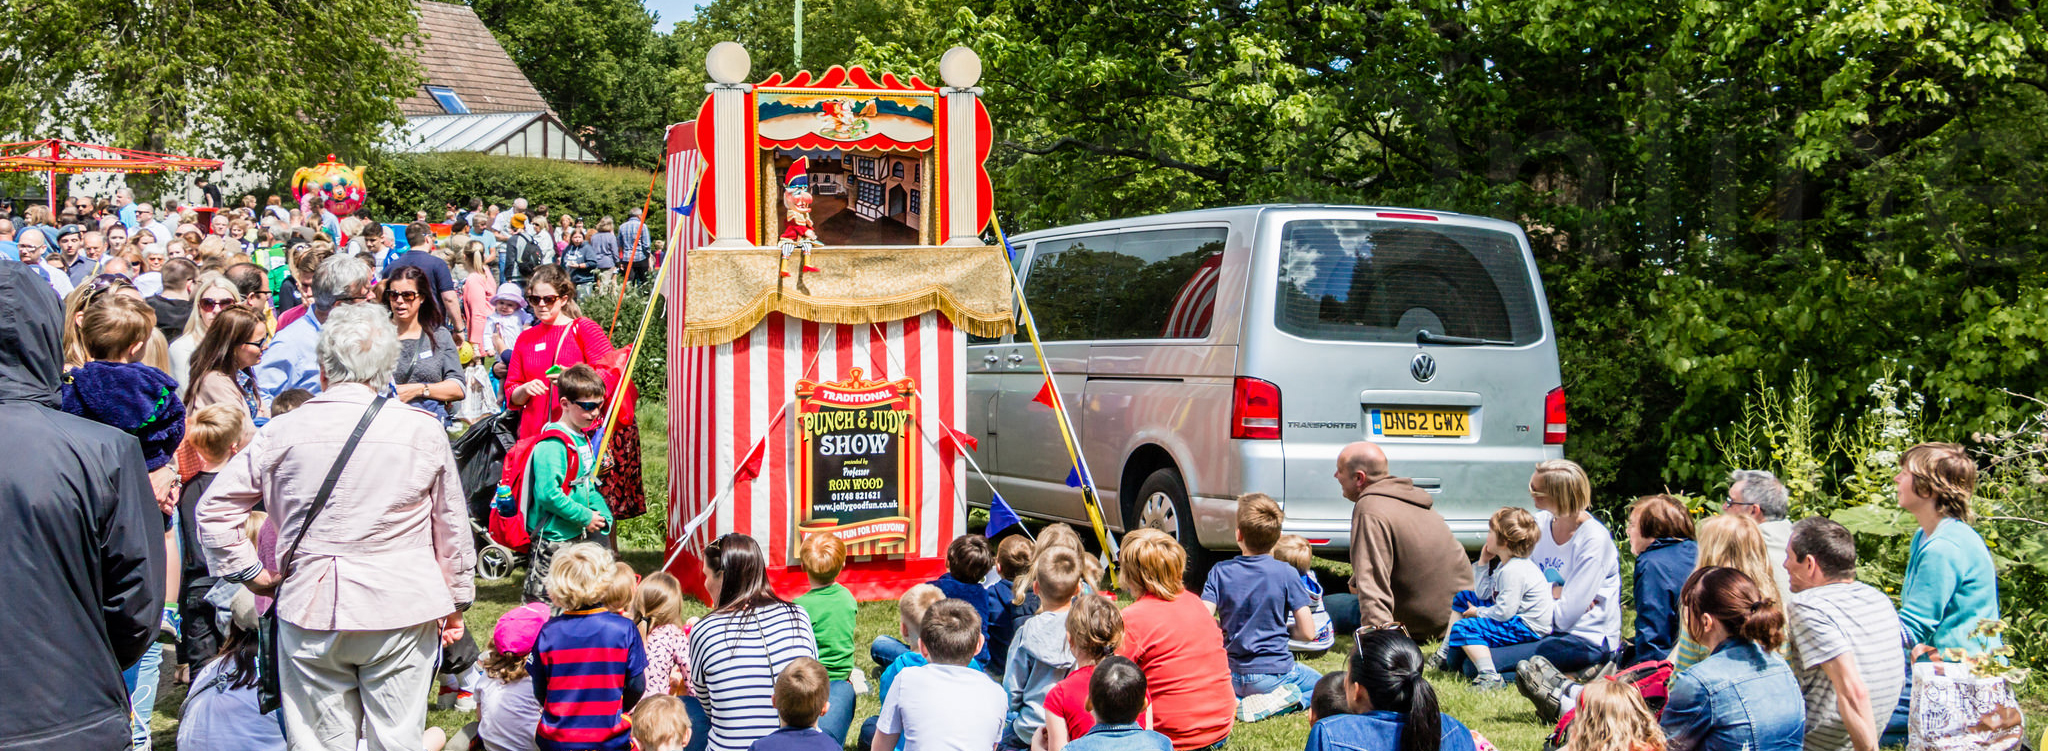 http://www.pontelandonline.co.uk/wp-content/uploads/2016/04/Party-Punch-Judy.jpg